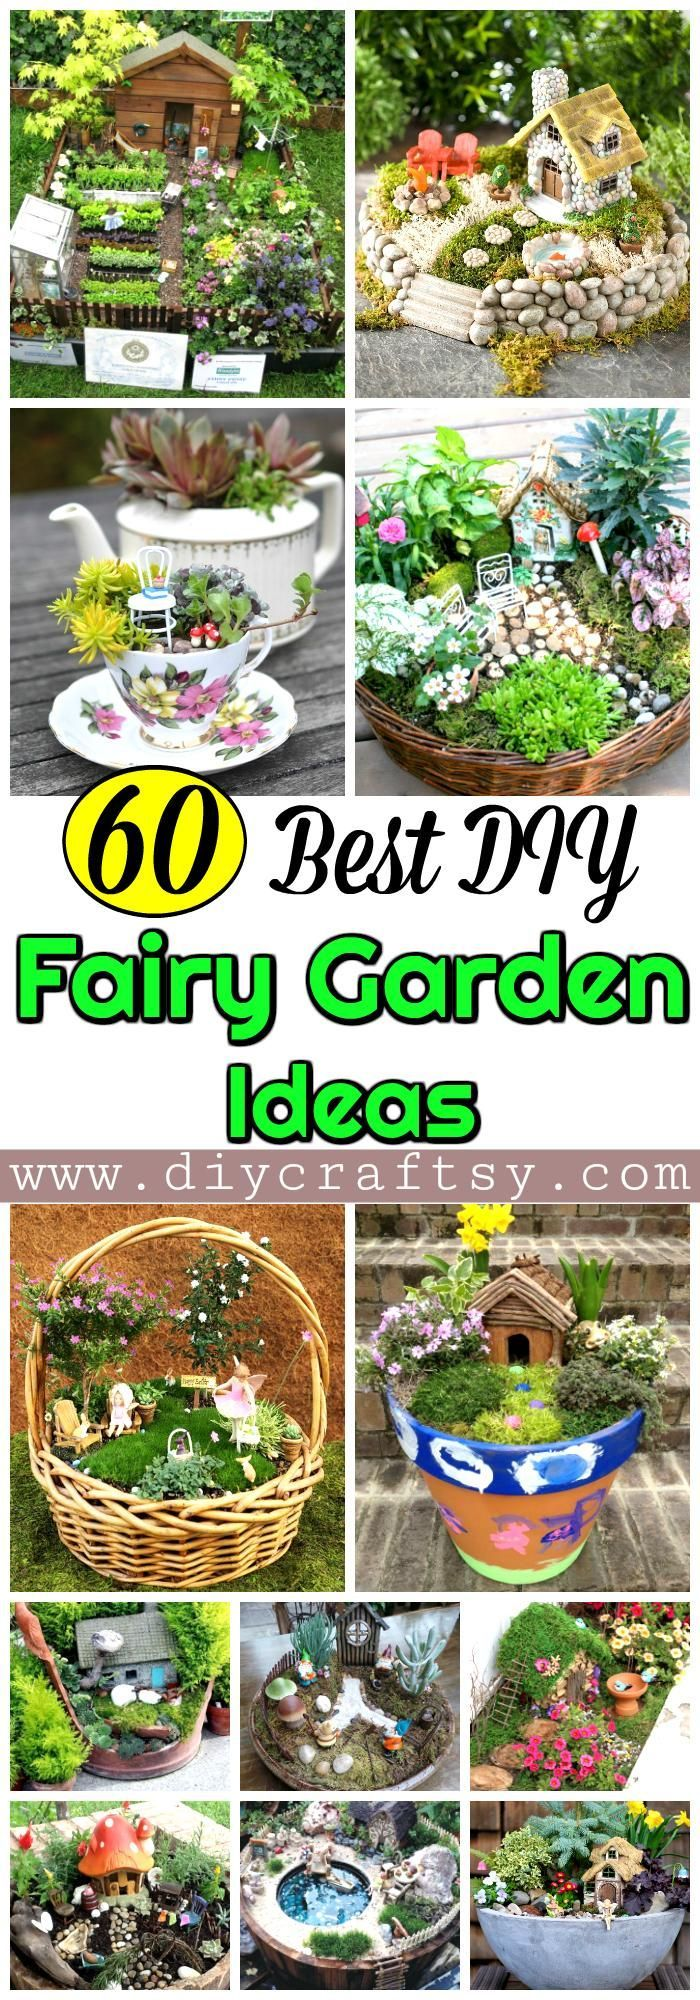 these 60 DIY fairy garden ideas or Fairy garden houses that are all amazing and would bring you a lot of useful and creative information!! For step-by-step